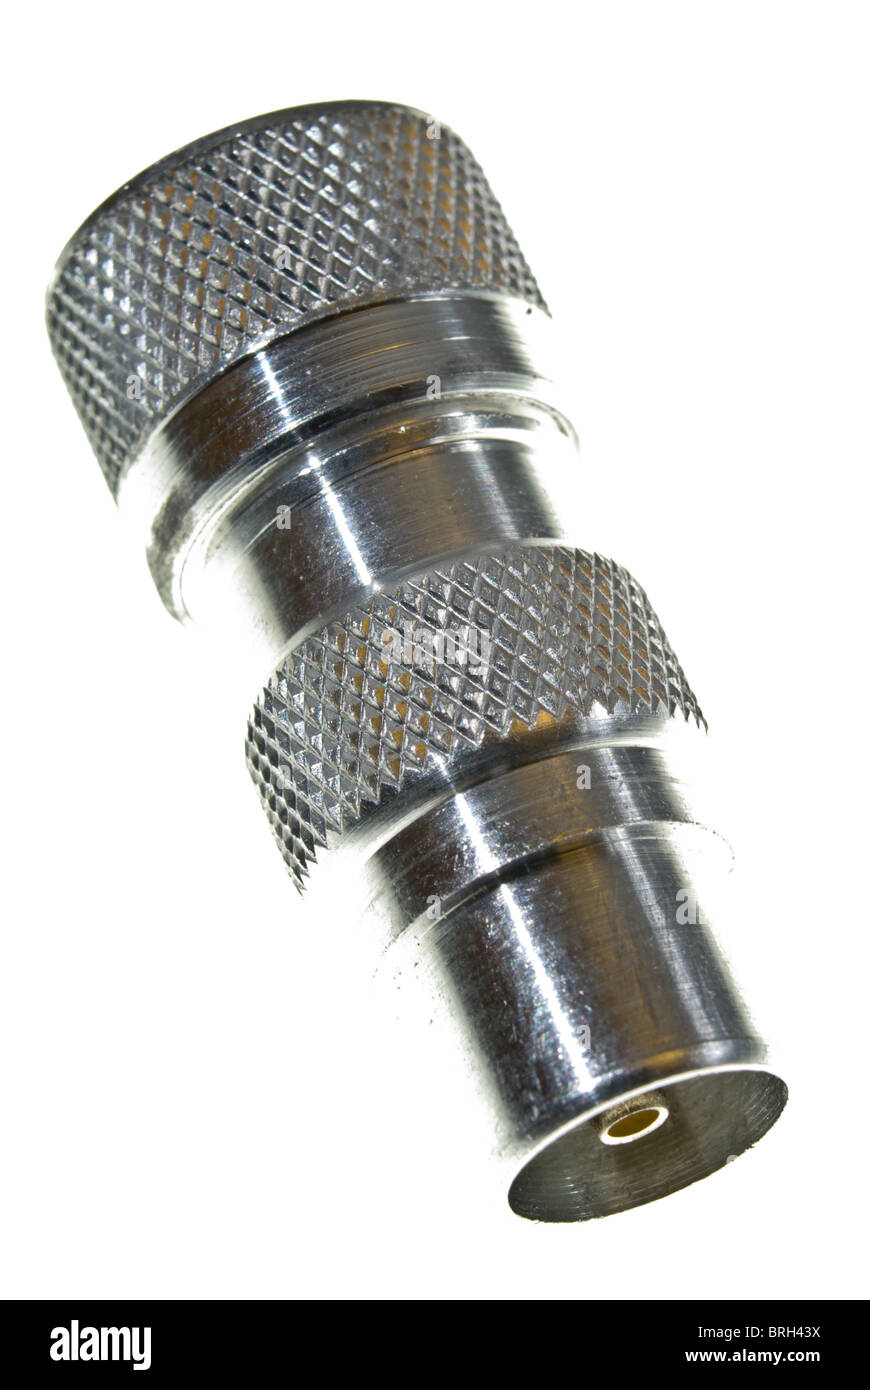 Co-axial male connector for TV aerial cable - Stock Image